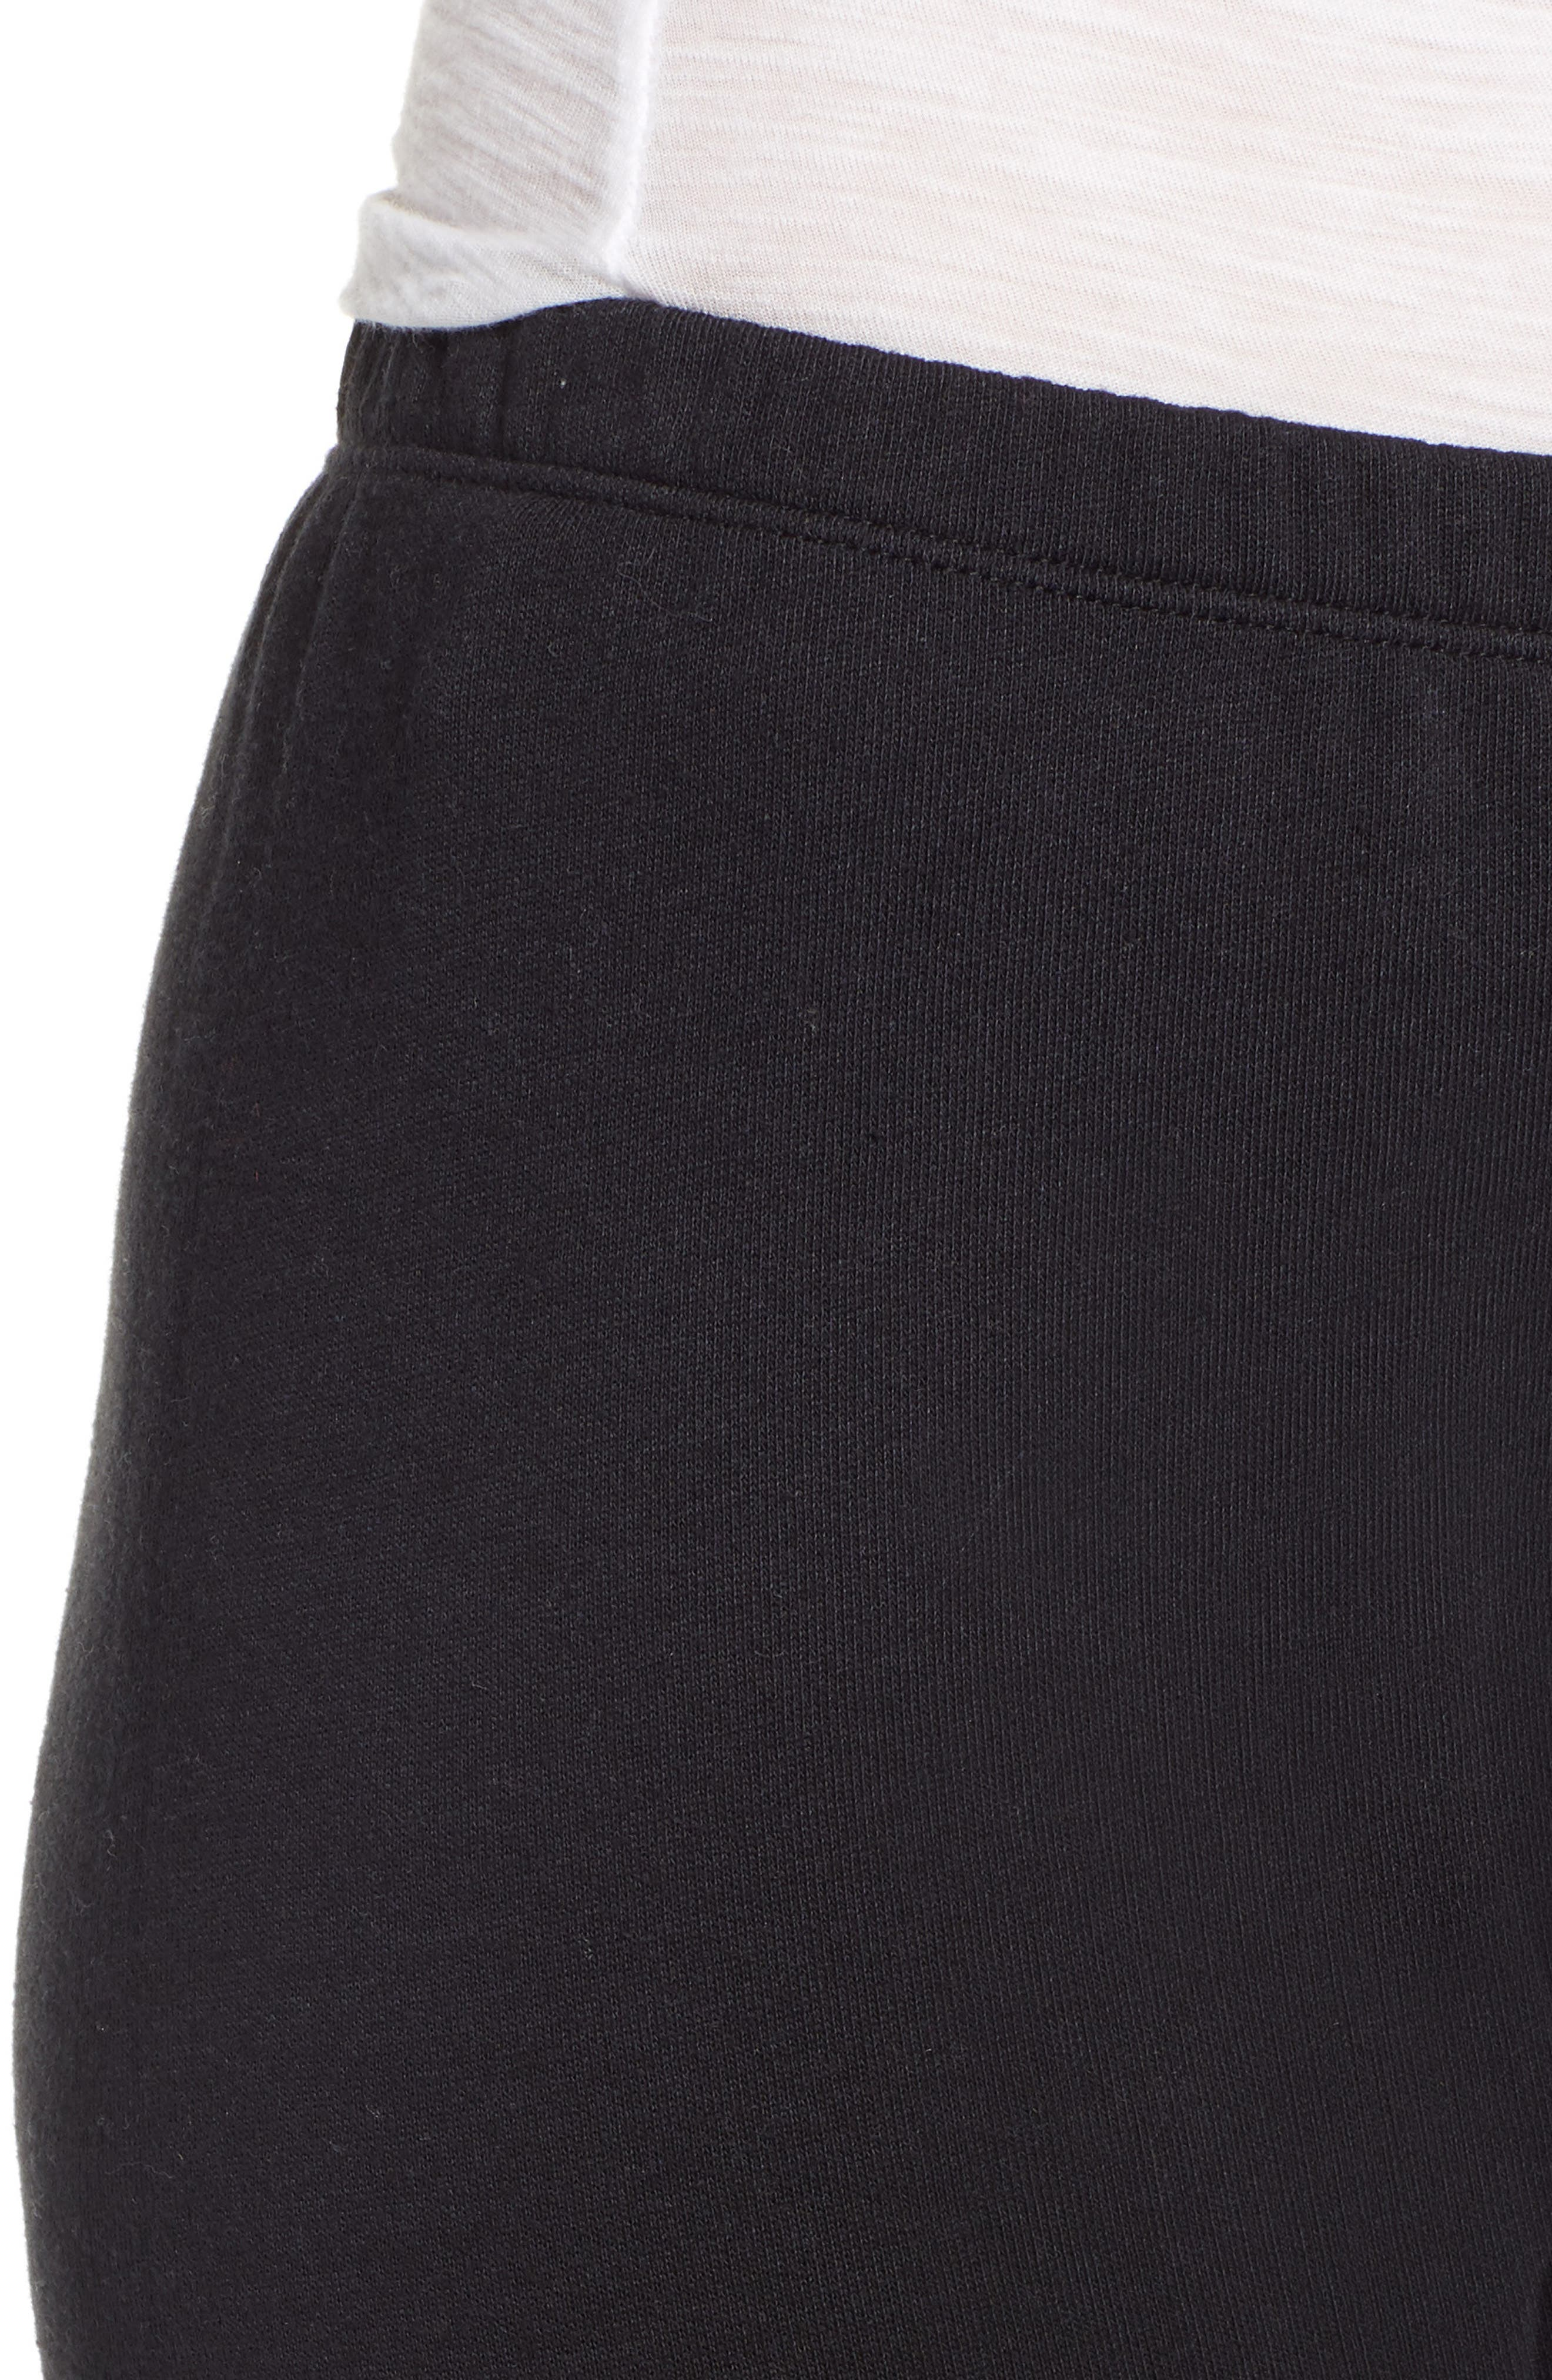 Knox Jogger Pants,                             Alternate thumbnail 4, color,                             JET BLACK